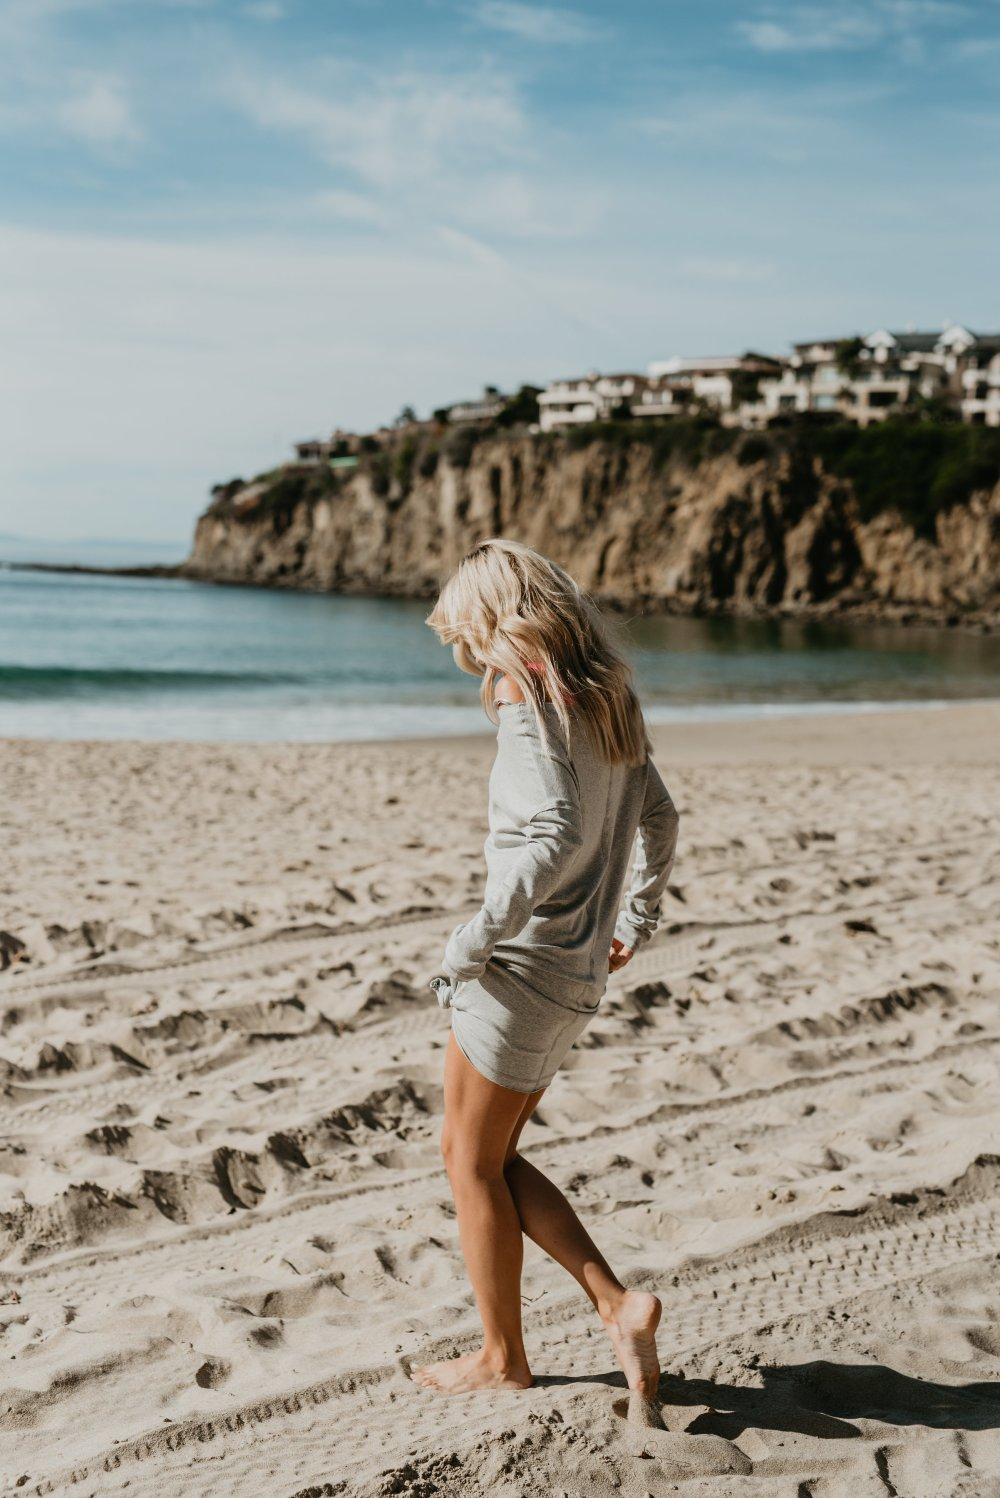 Sharing the details on my amazing California trip where we spent most of our time at the beach in swim suits! I love this site for affordable swim suit options and cover ups! My cover up was so soft, comfy and perfect for beach nights! I am ready for summer weather and fashion! #trulydestiny #beachwear #swimsuits #swimwear #womensfashion #beachstyle